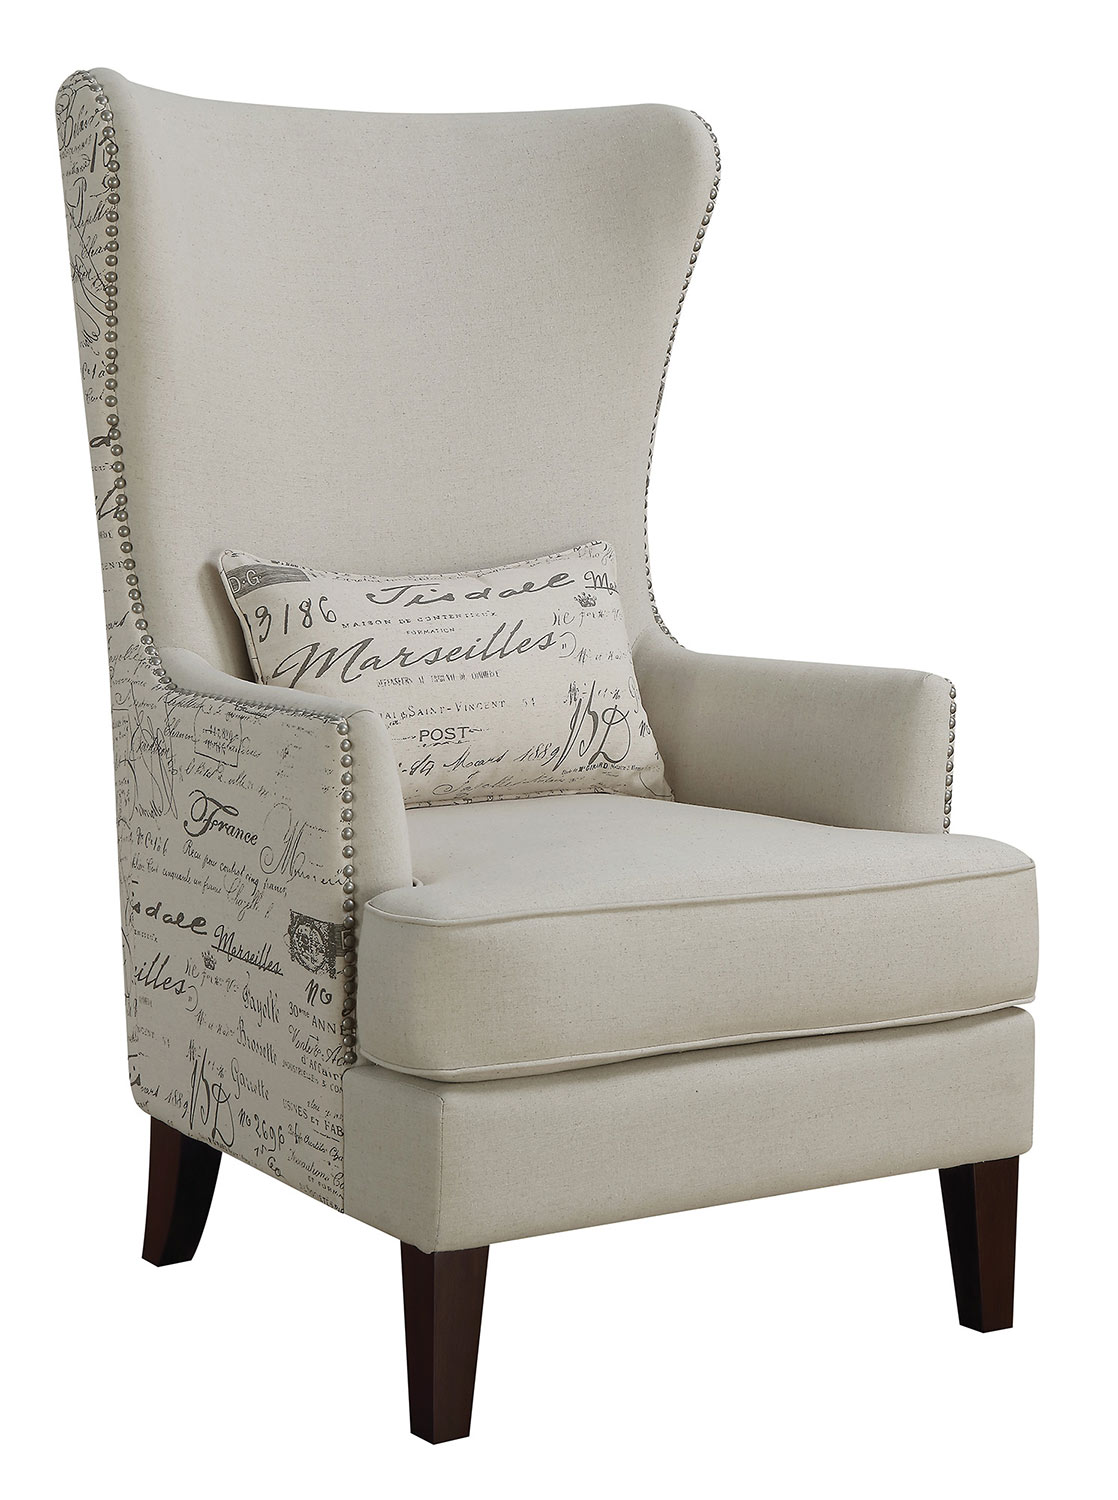 Coaster 904047 Accent Chair - Cream